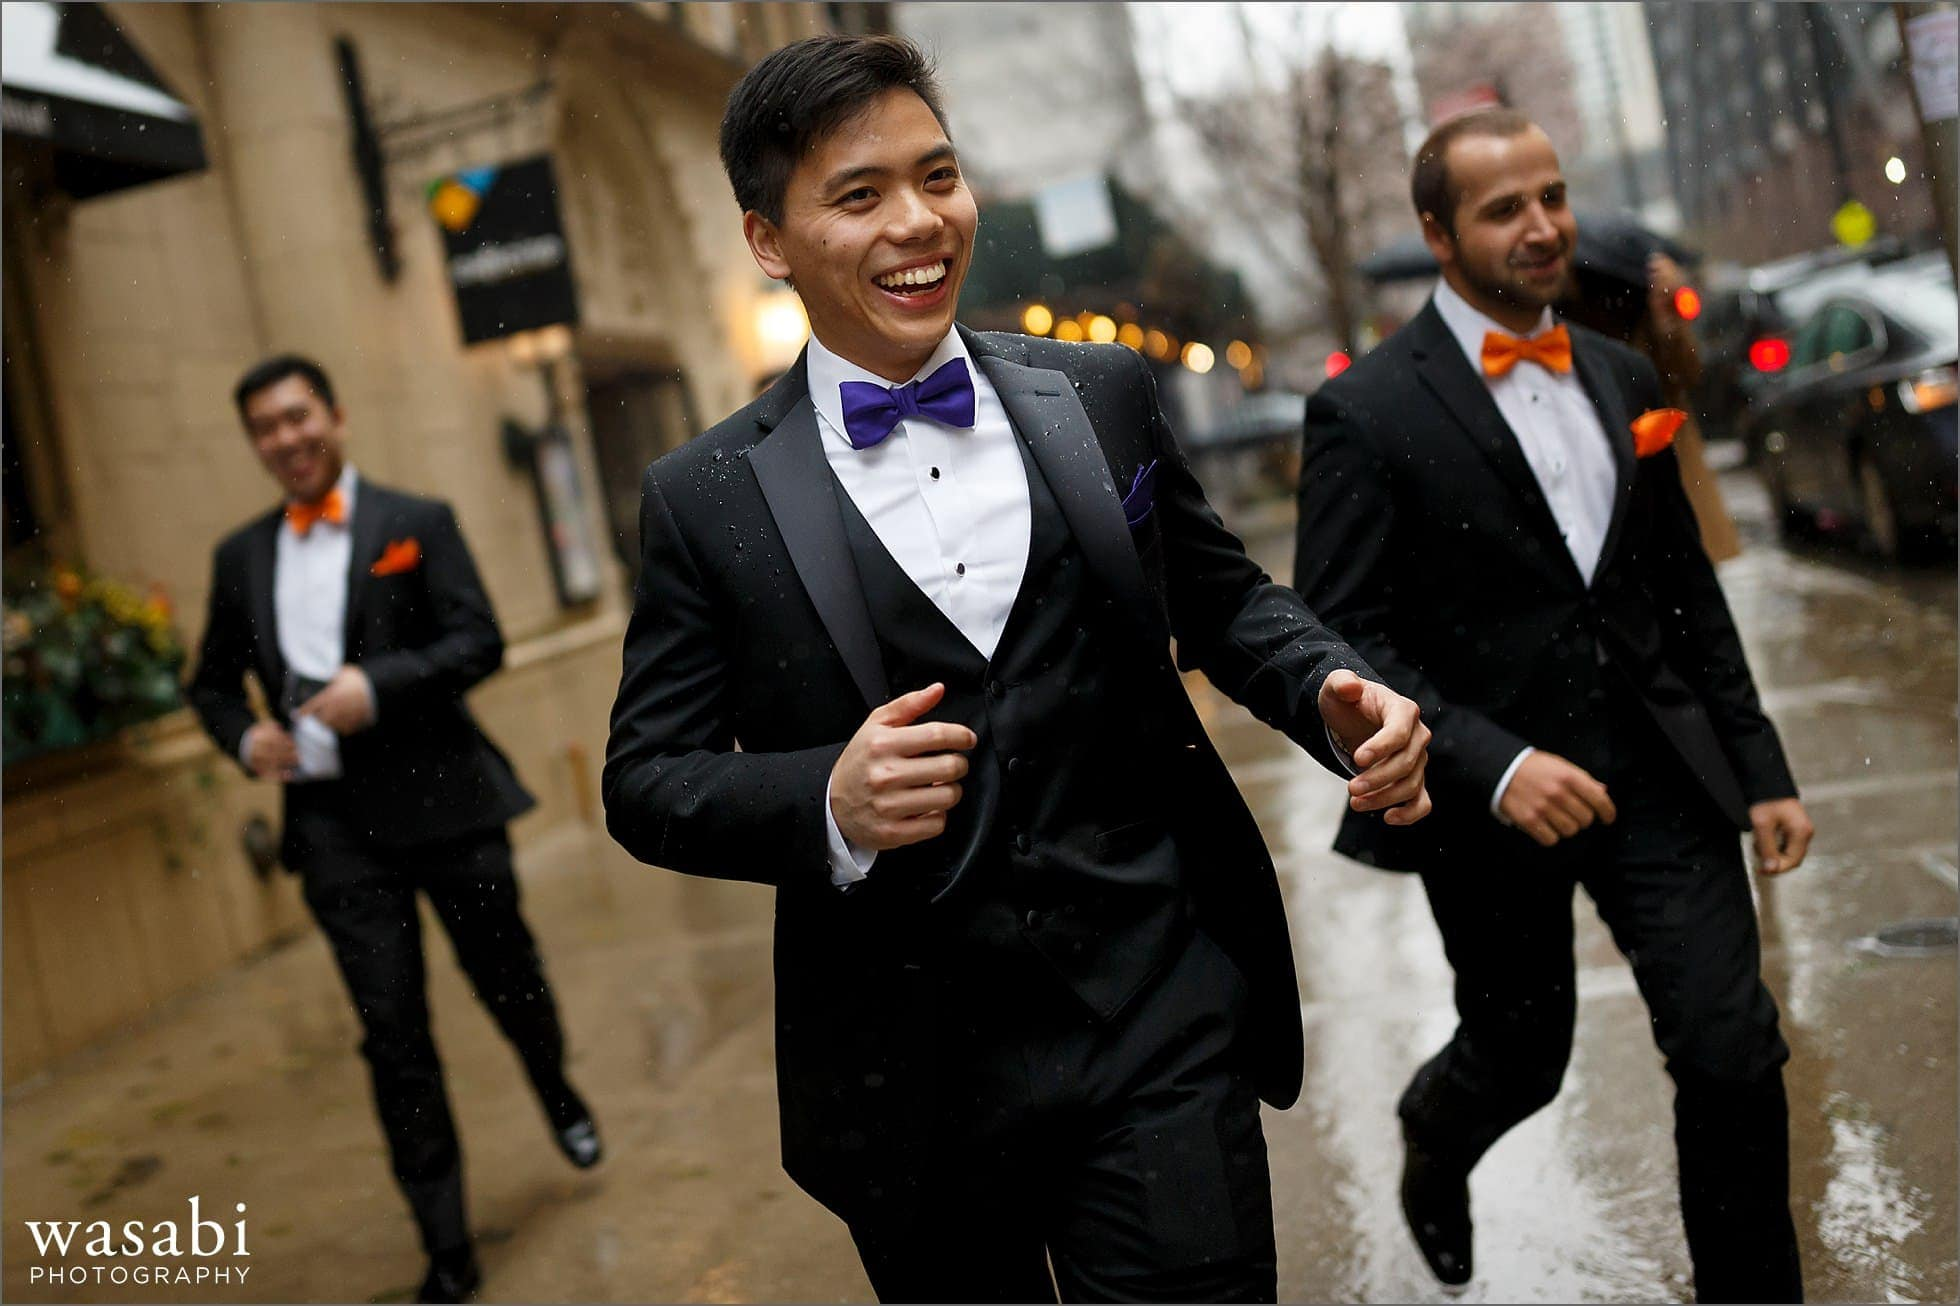 groom and groomsemen run through rain on wedding day